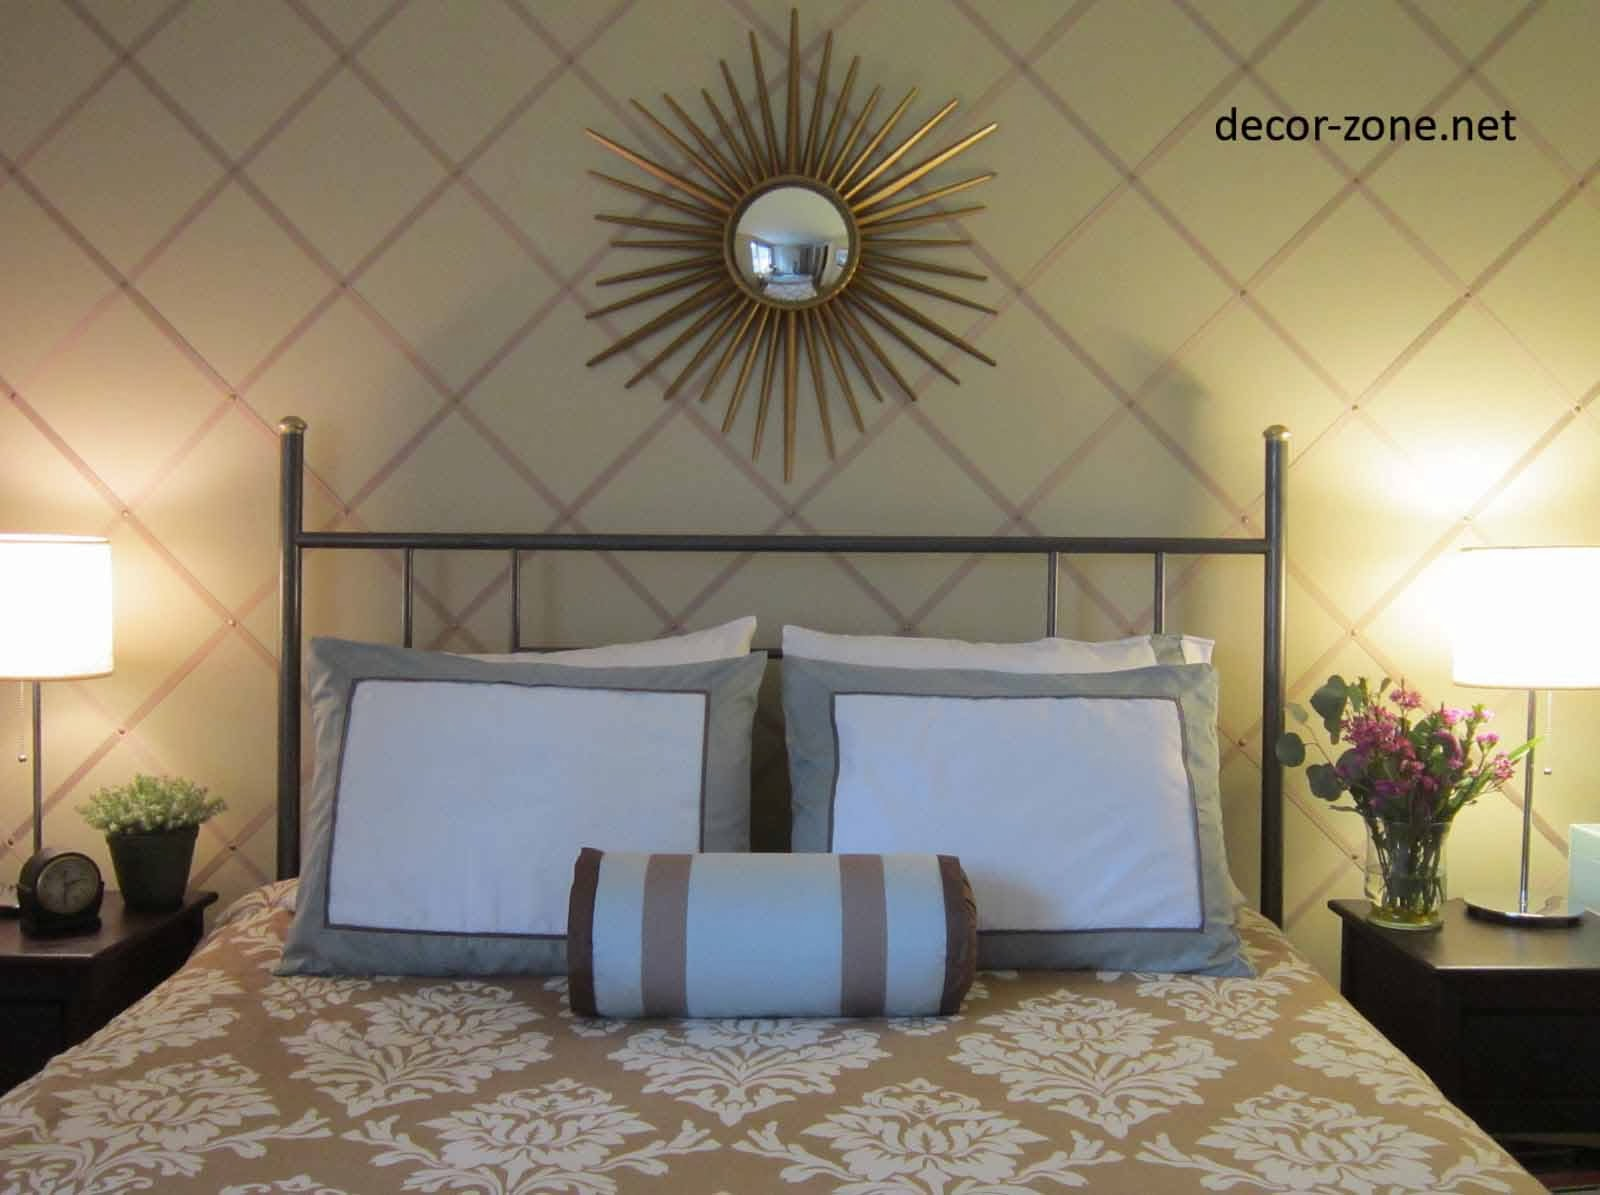 wall mirrors over the bed, bedroom wall decor